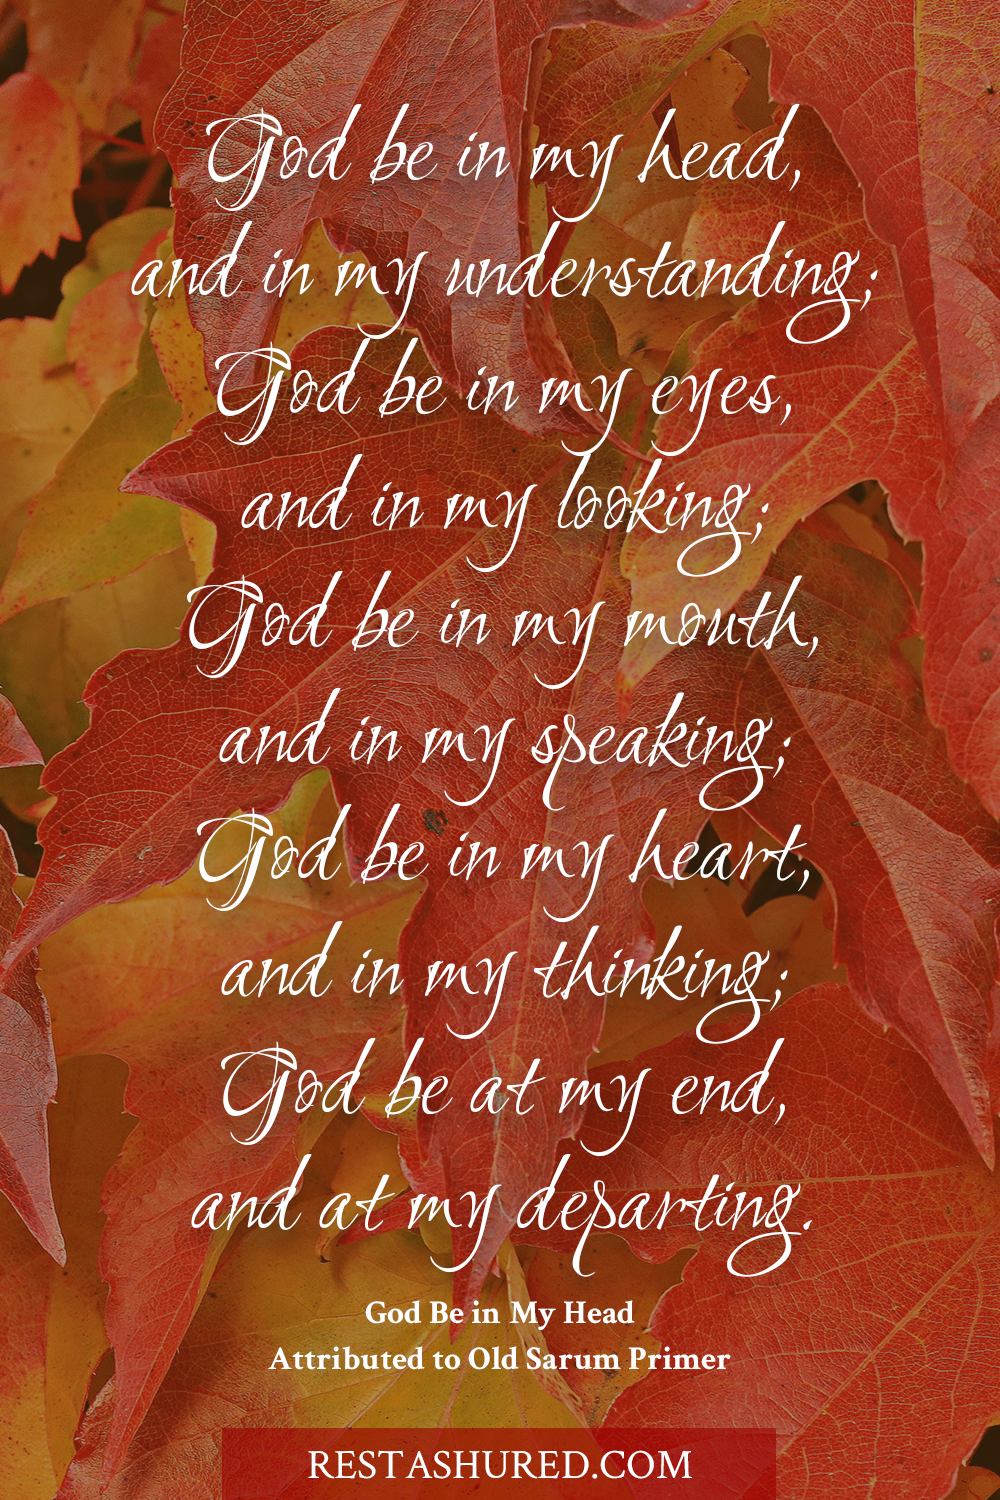 Photo of Quote, God be in my head, and in my understanding...